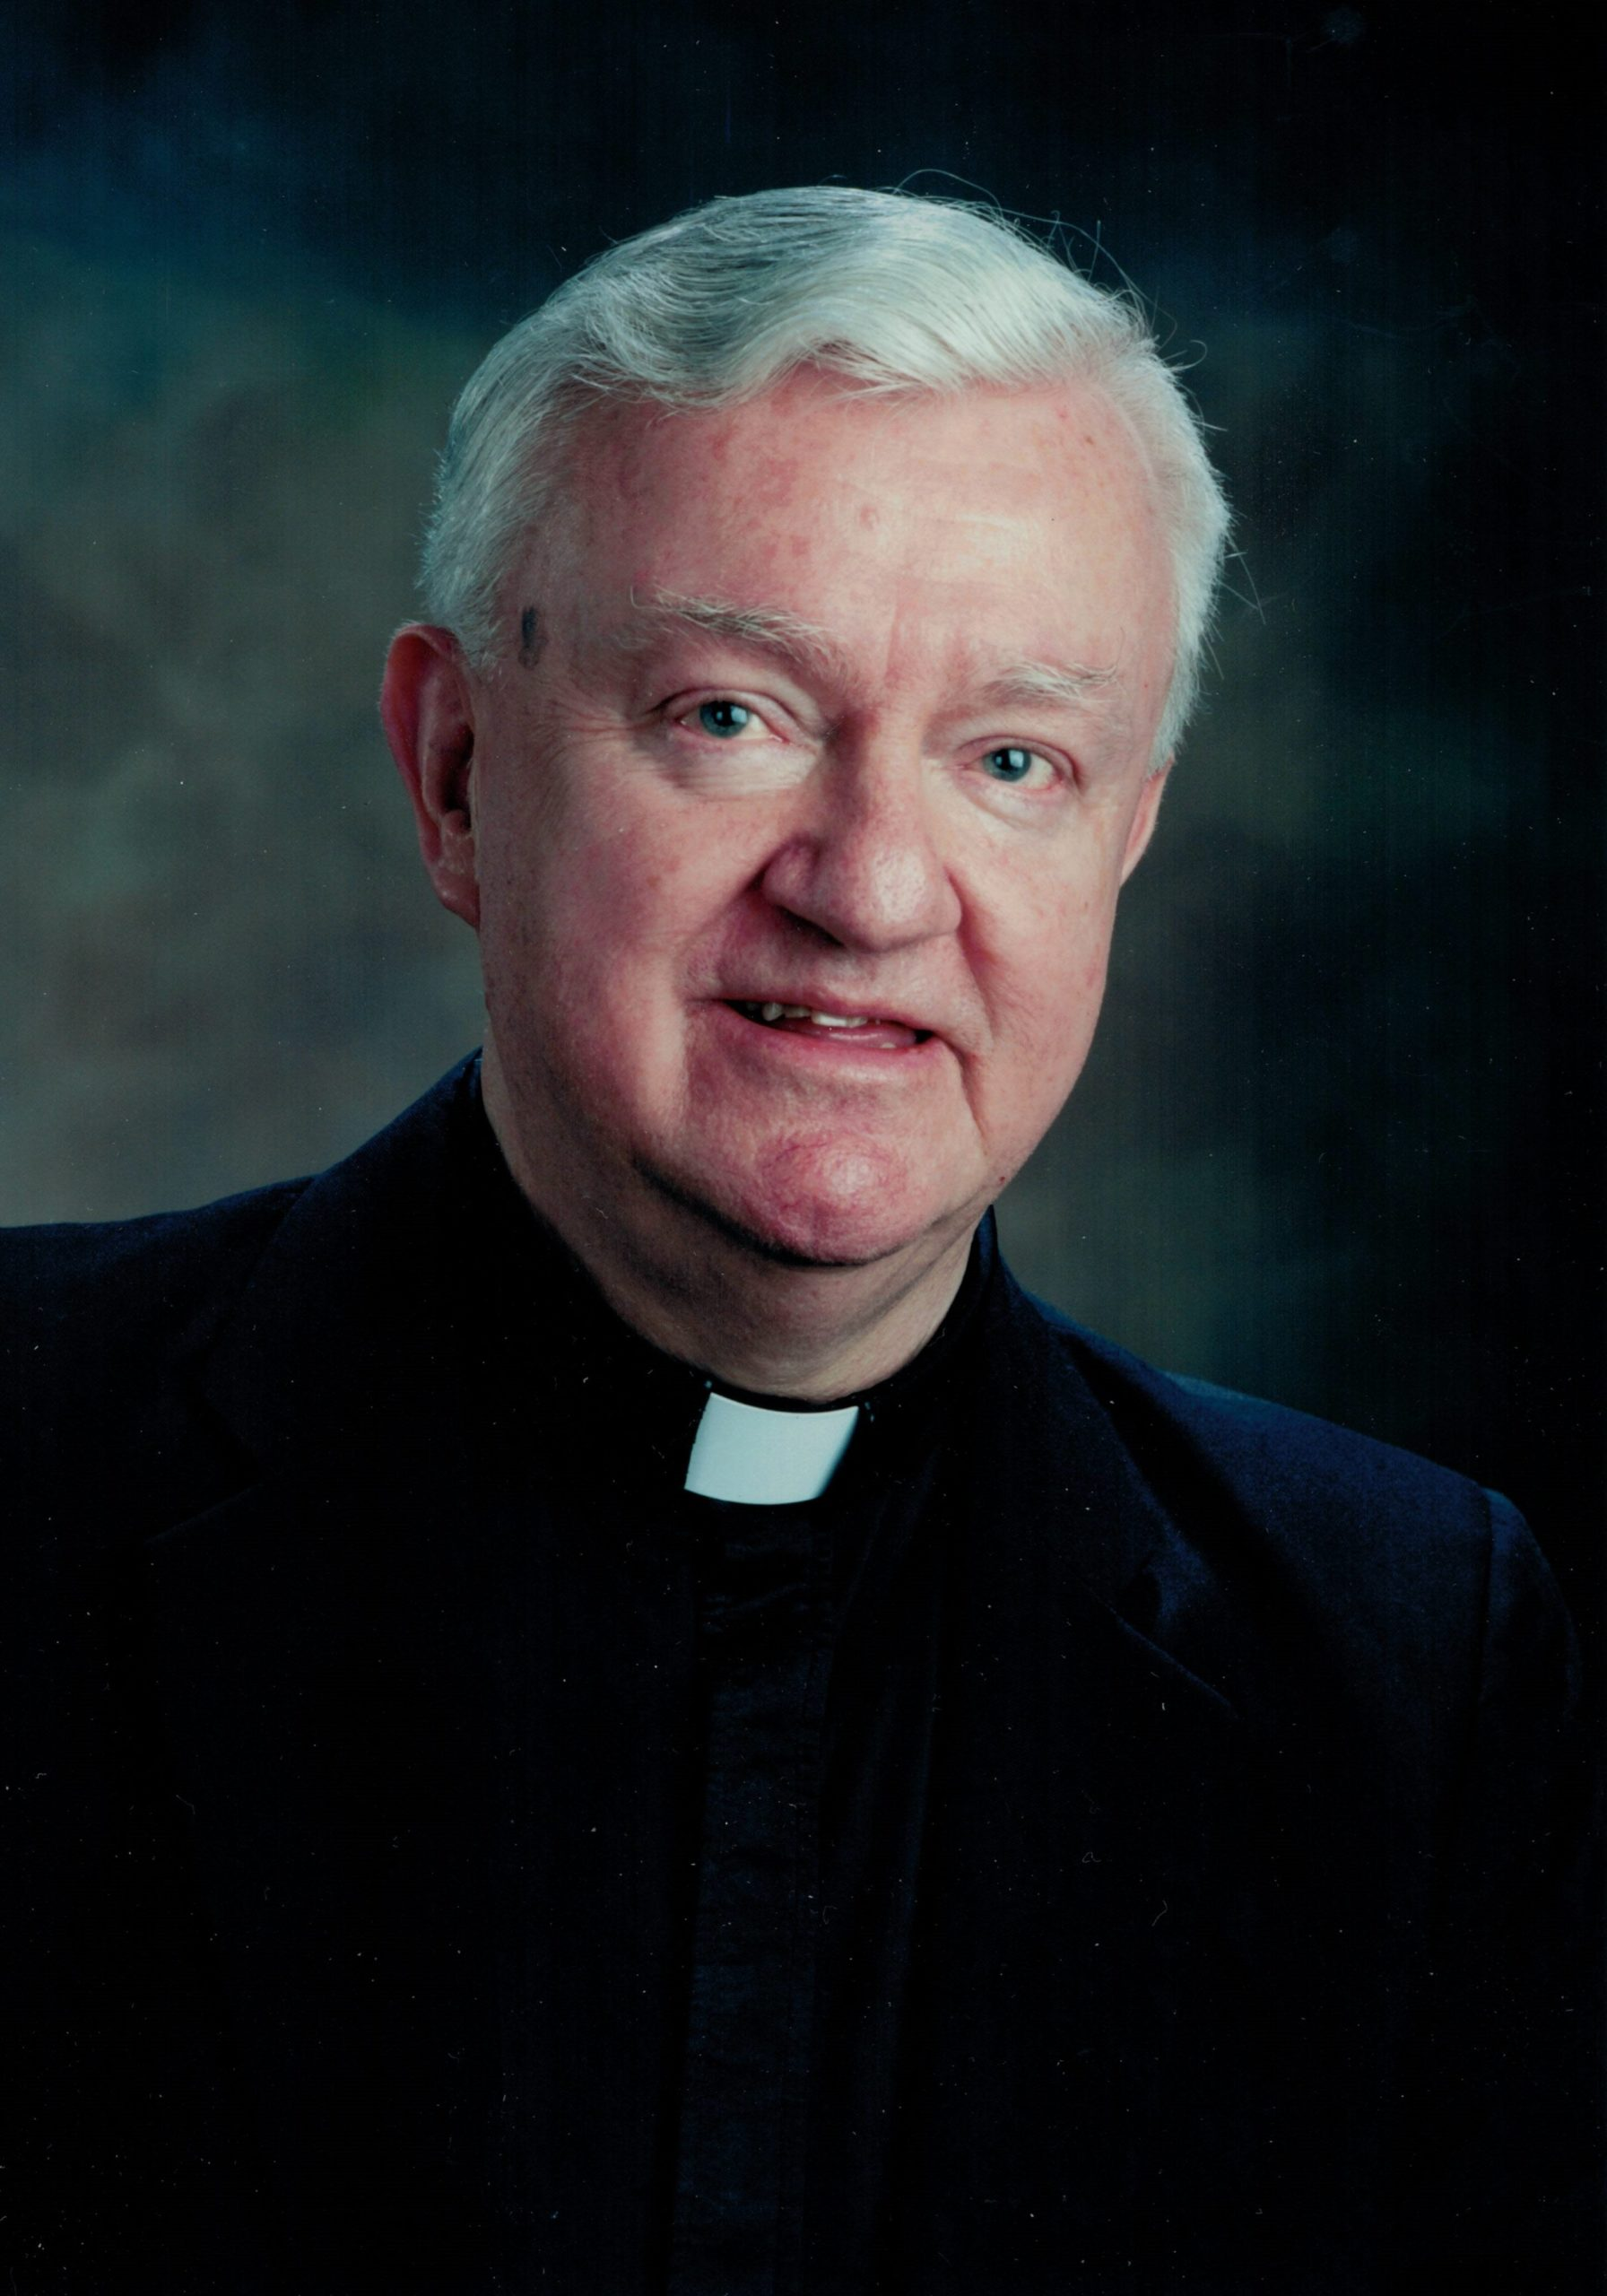 Monsignor William J. Linder, Founder Of New Community Corporation, Has Passed Away